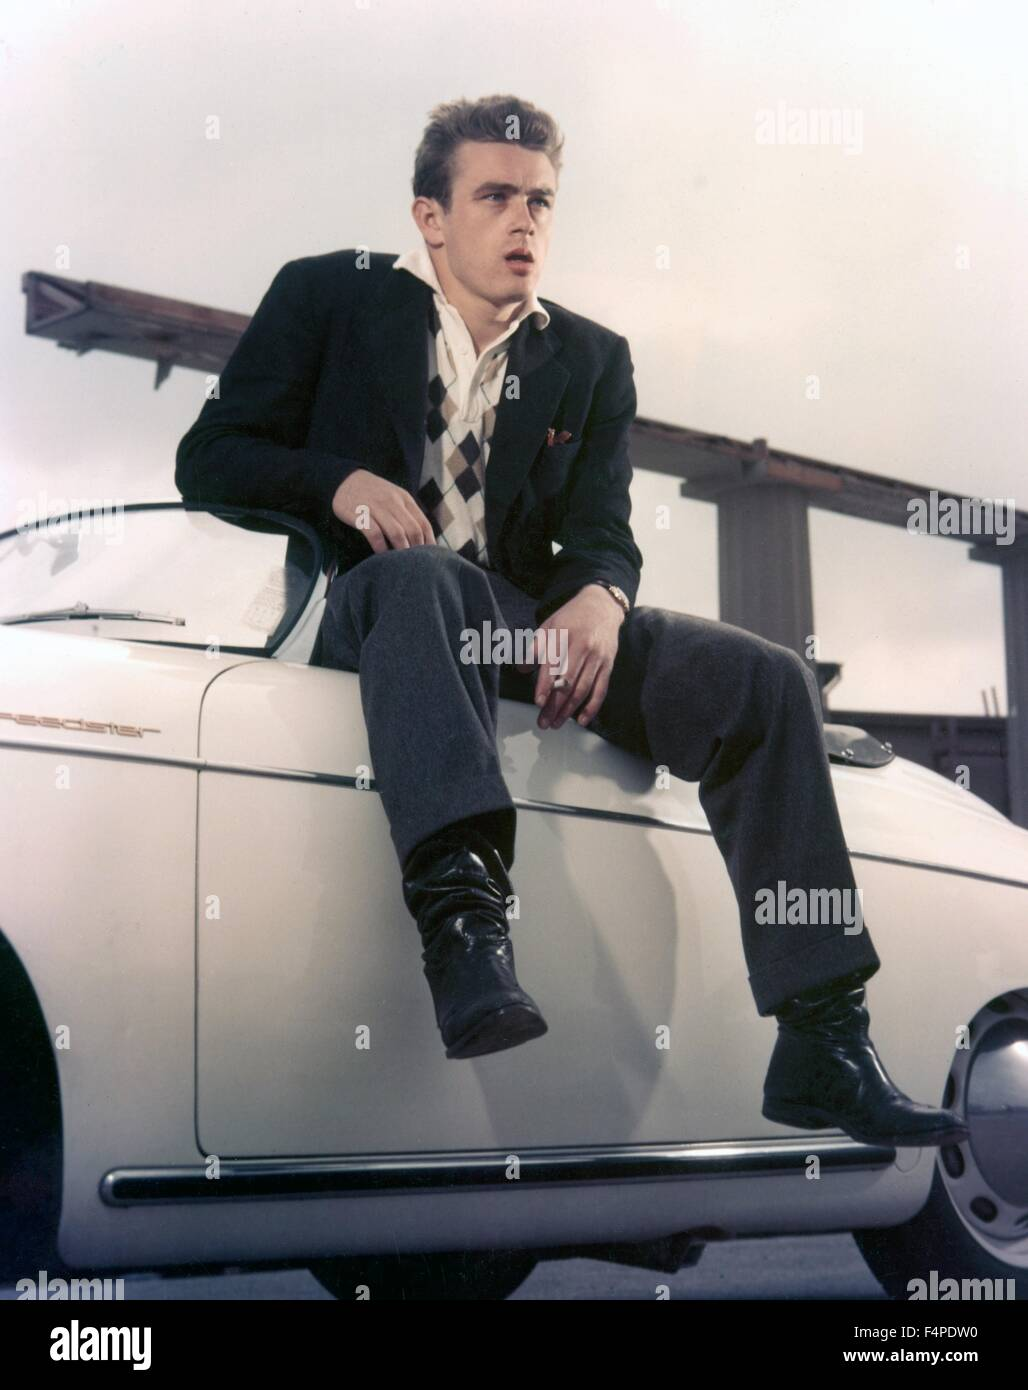 James Dean in the 1950's - Stock Image